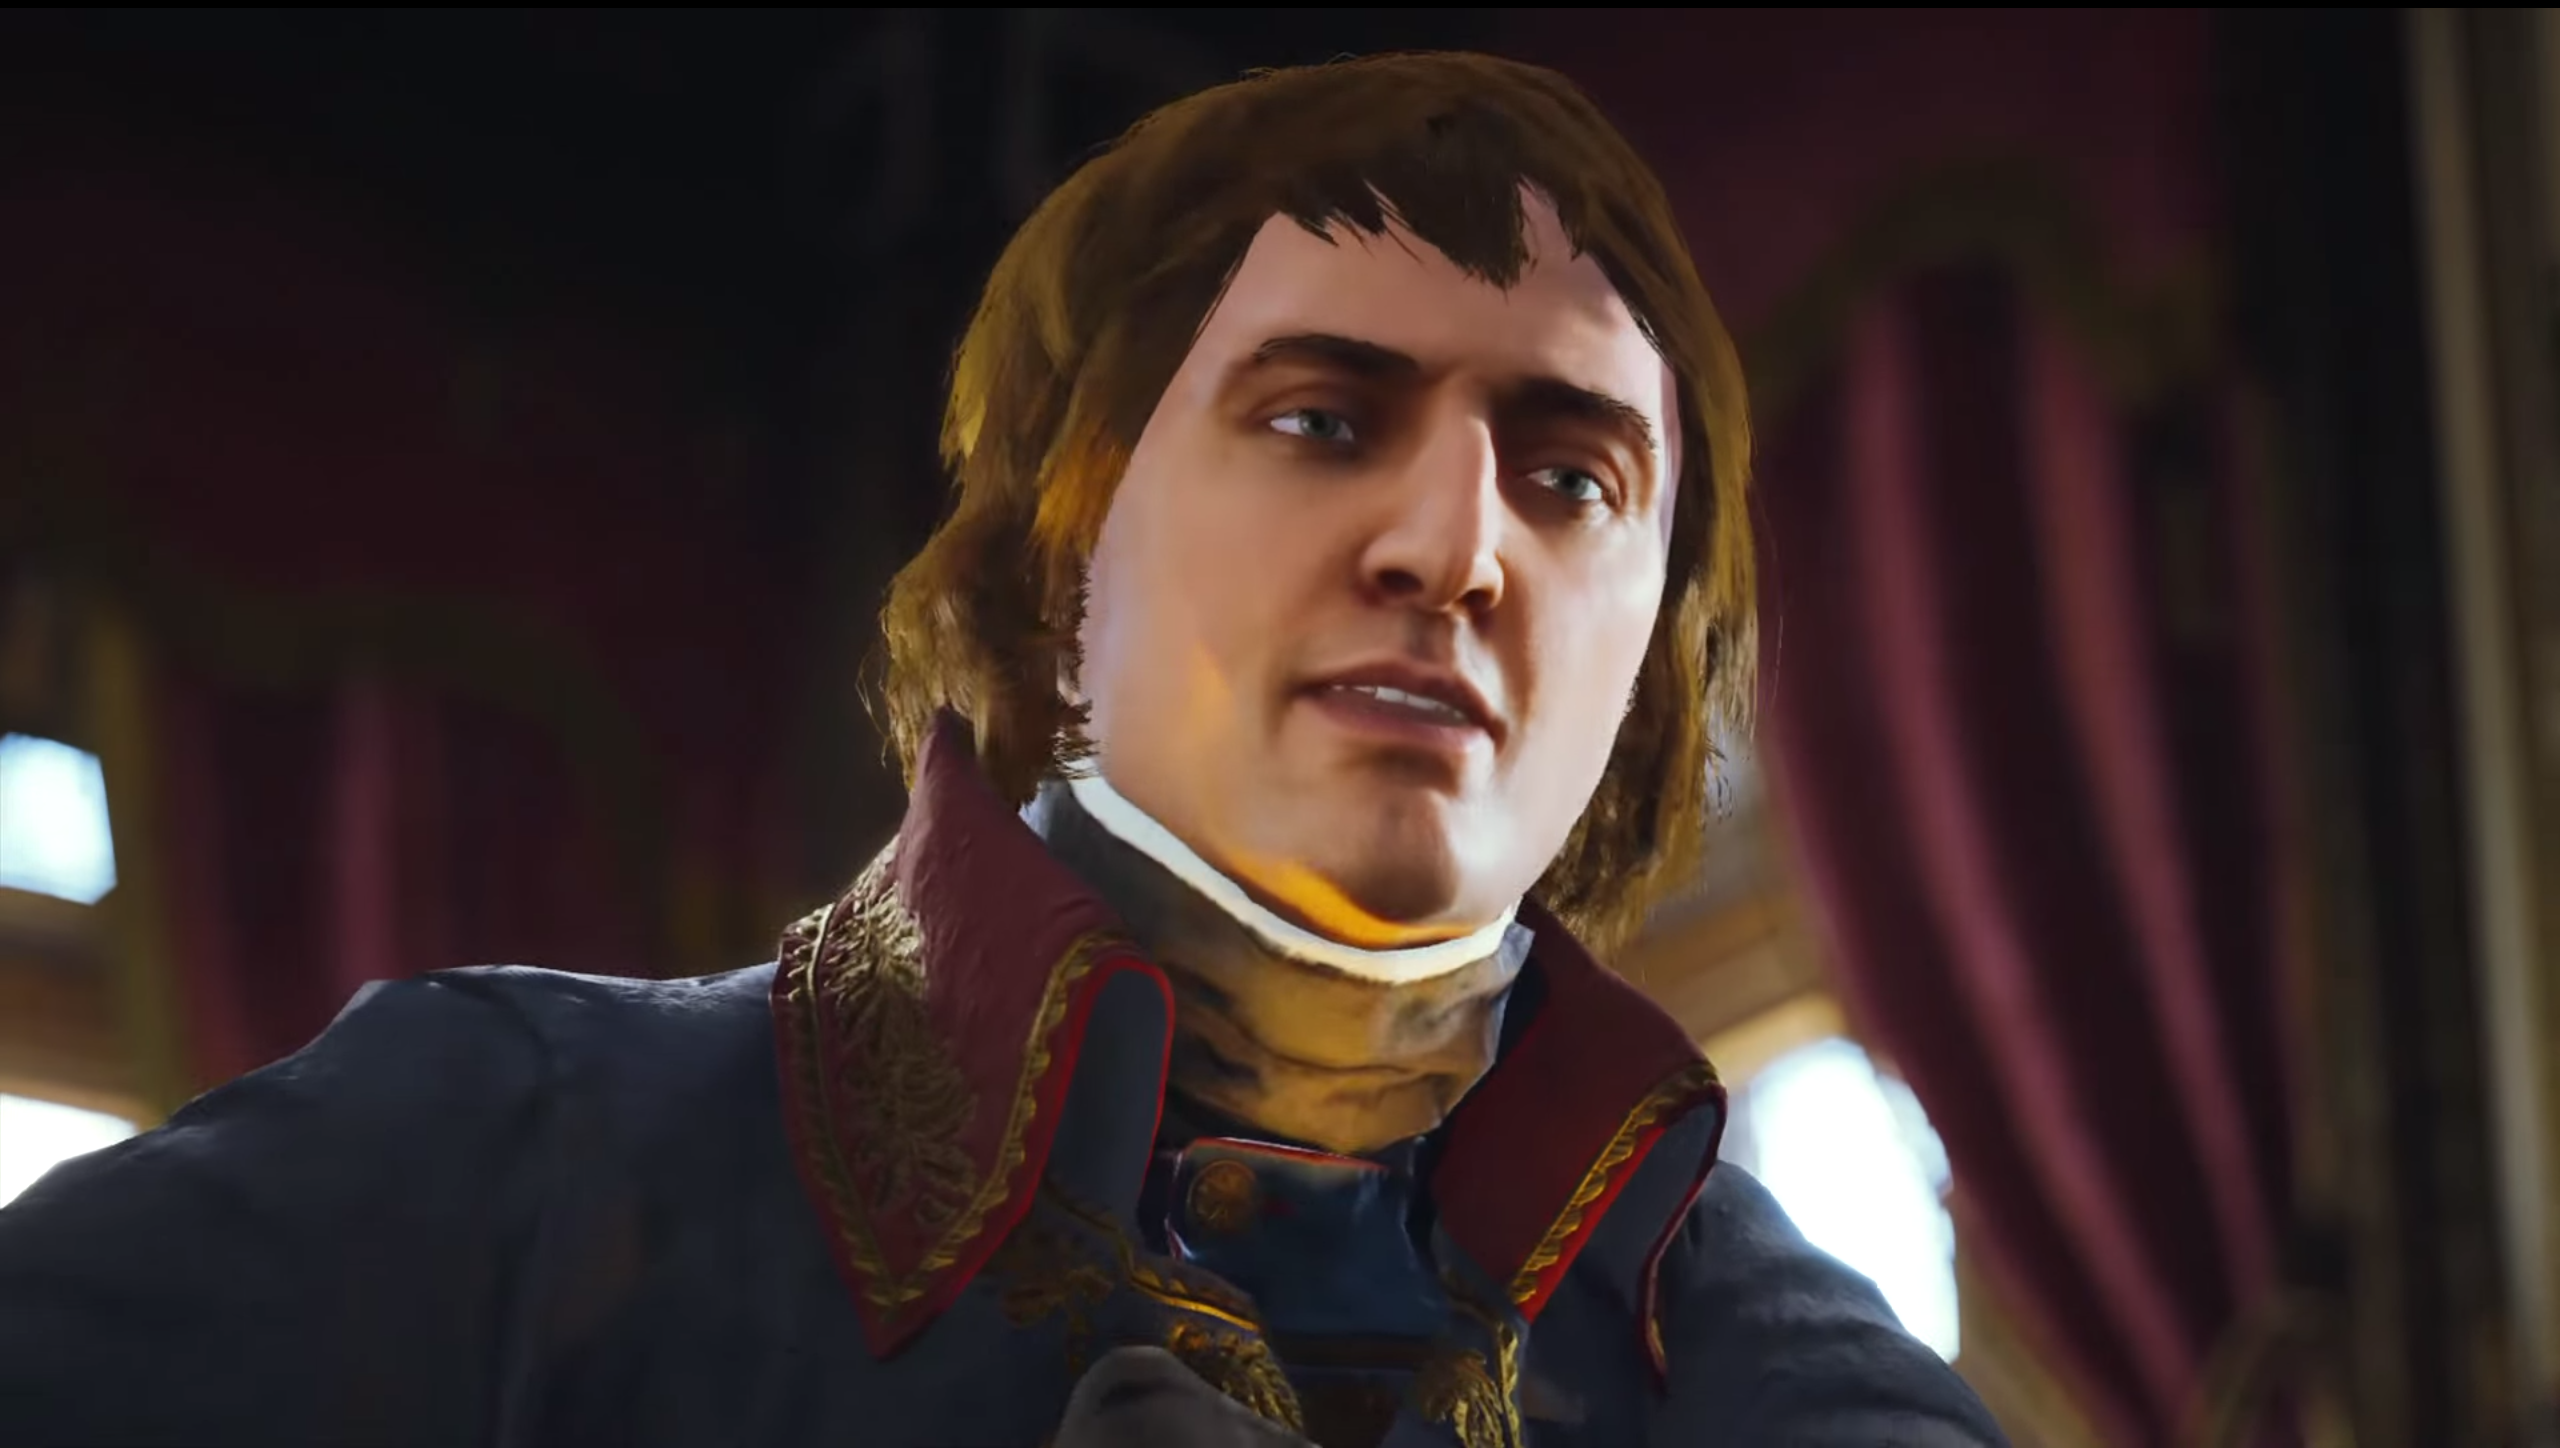 image napoleon 3 png assassin s creed wiki fandom powered by full resolution